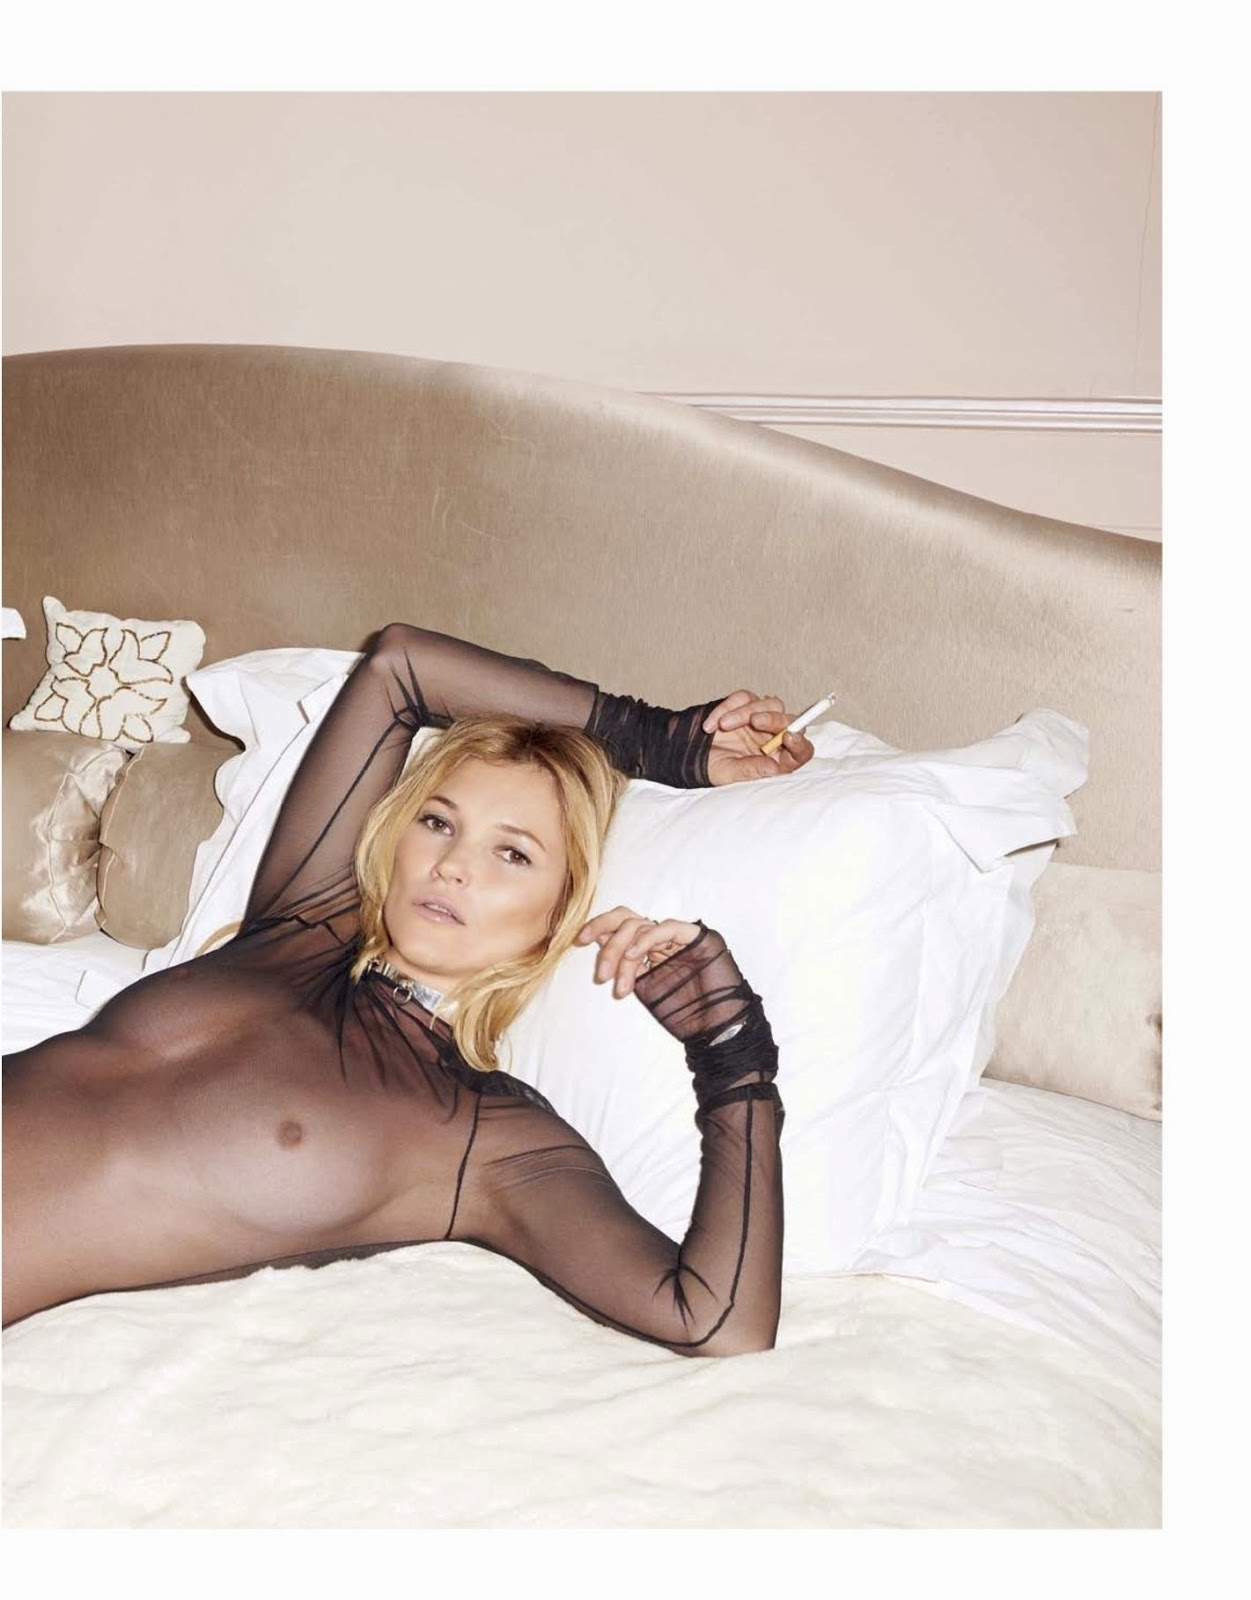 unscathed corpse kate moss by terry richardson